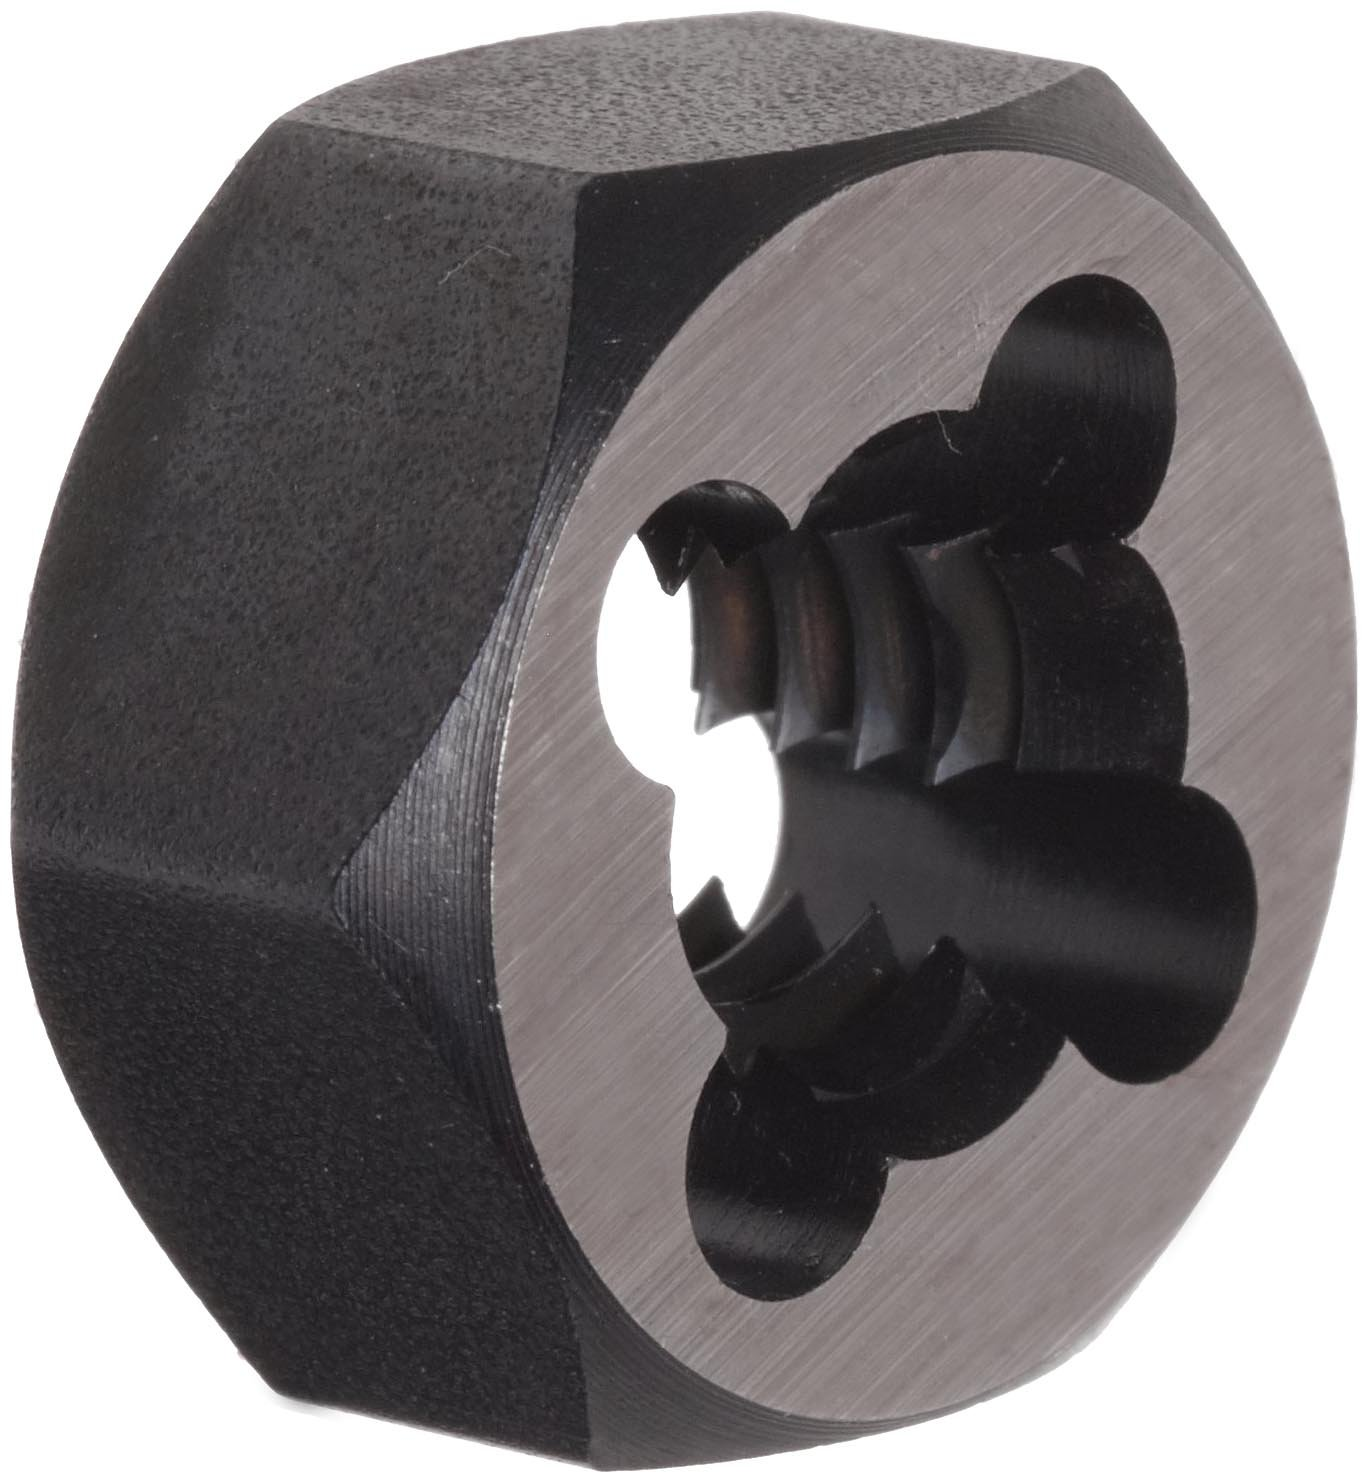 Union Butterfield 2025(UNC) Carbon Steel Hexagon Threading Die, Uncoated (Bright) Finish, 7/16''-14 Thread Size